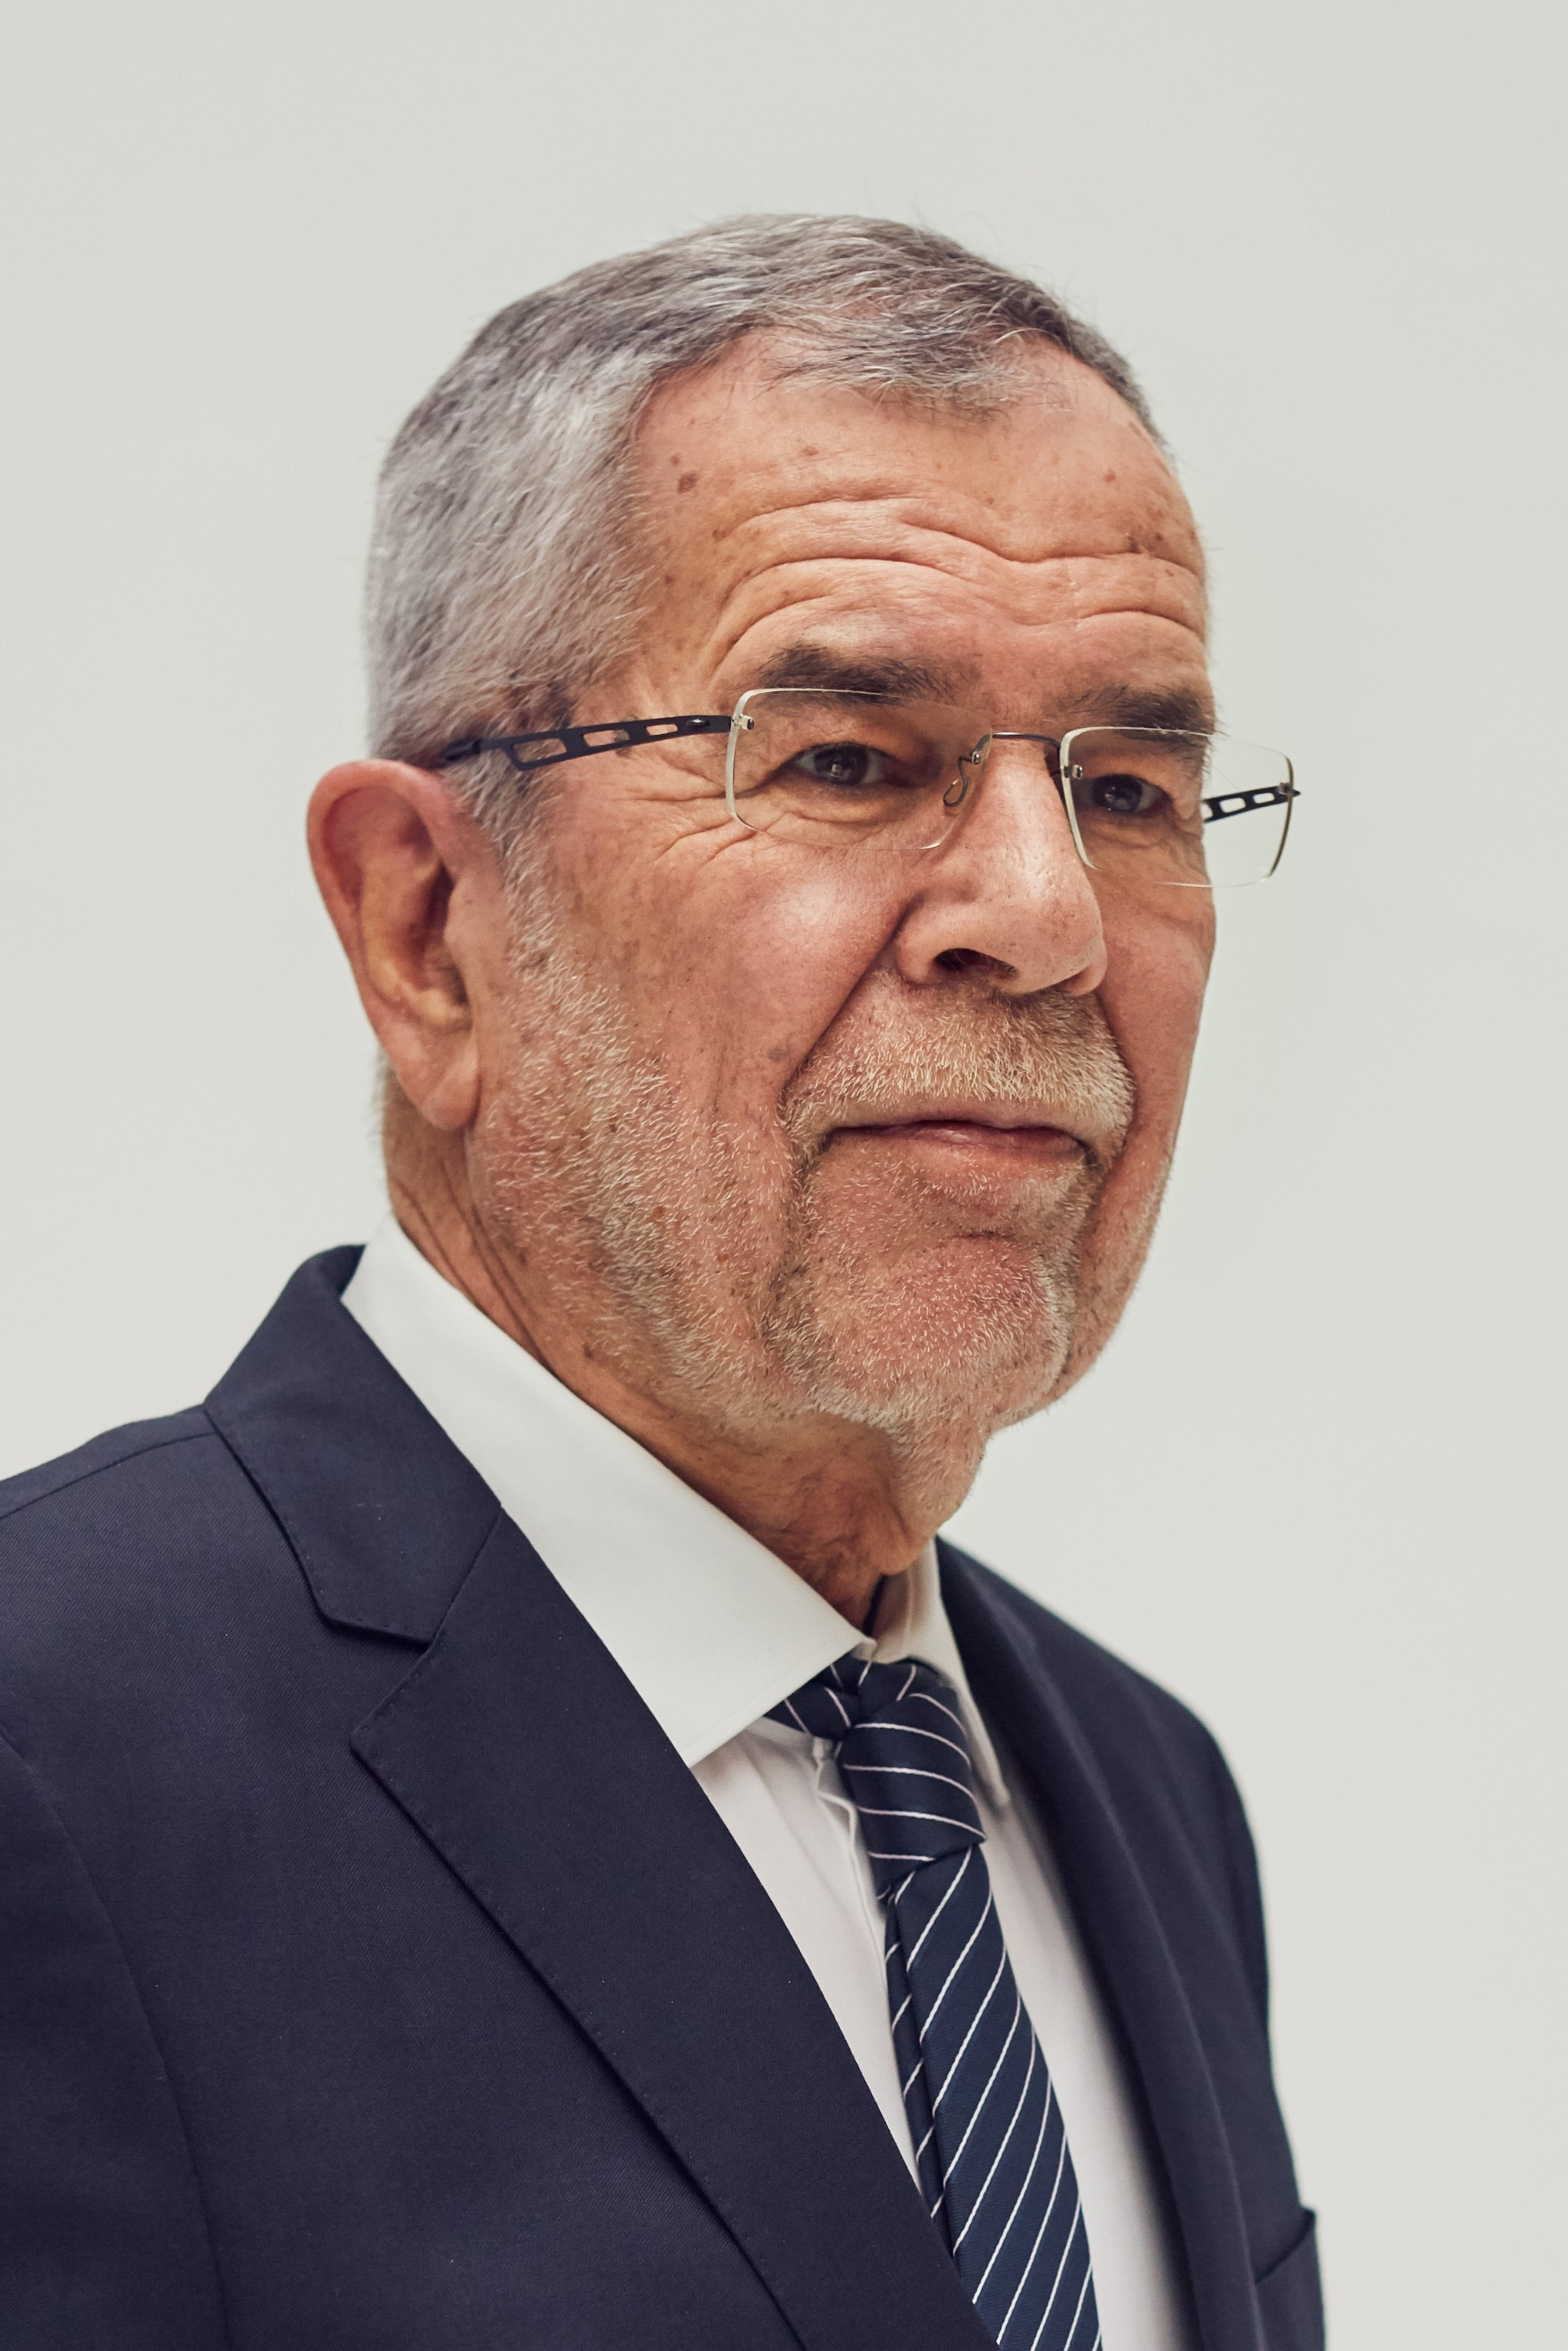 Statement From The President Of The Federal Republic Of Austria